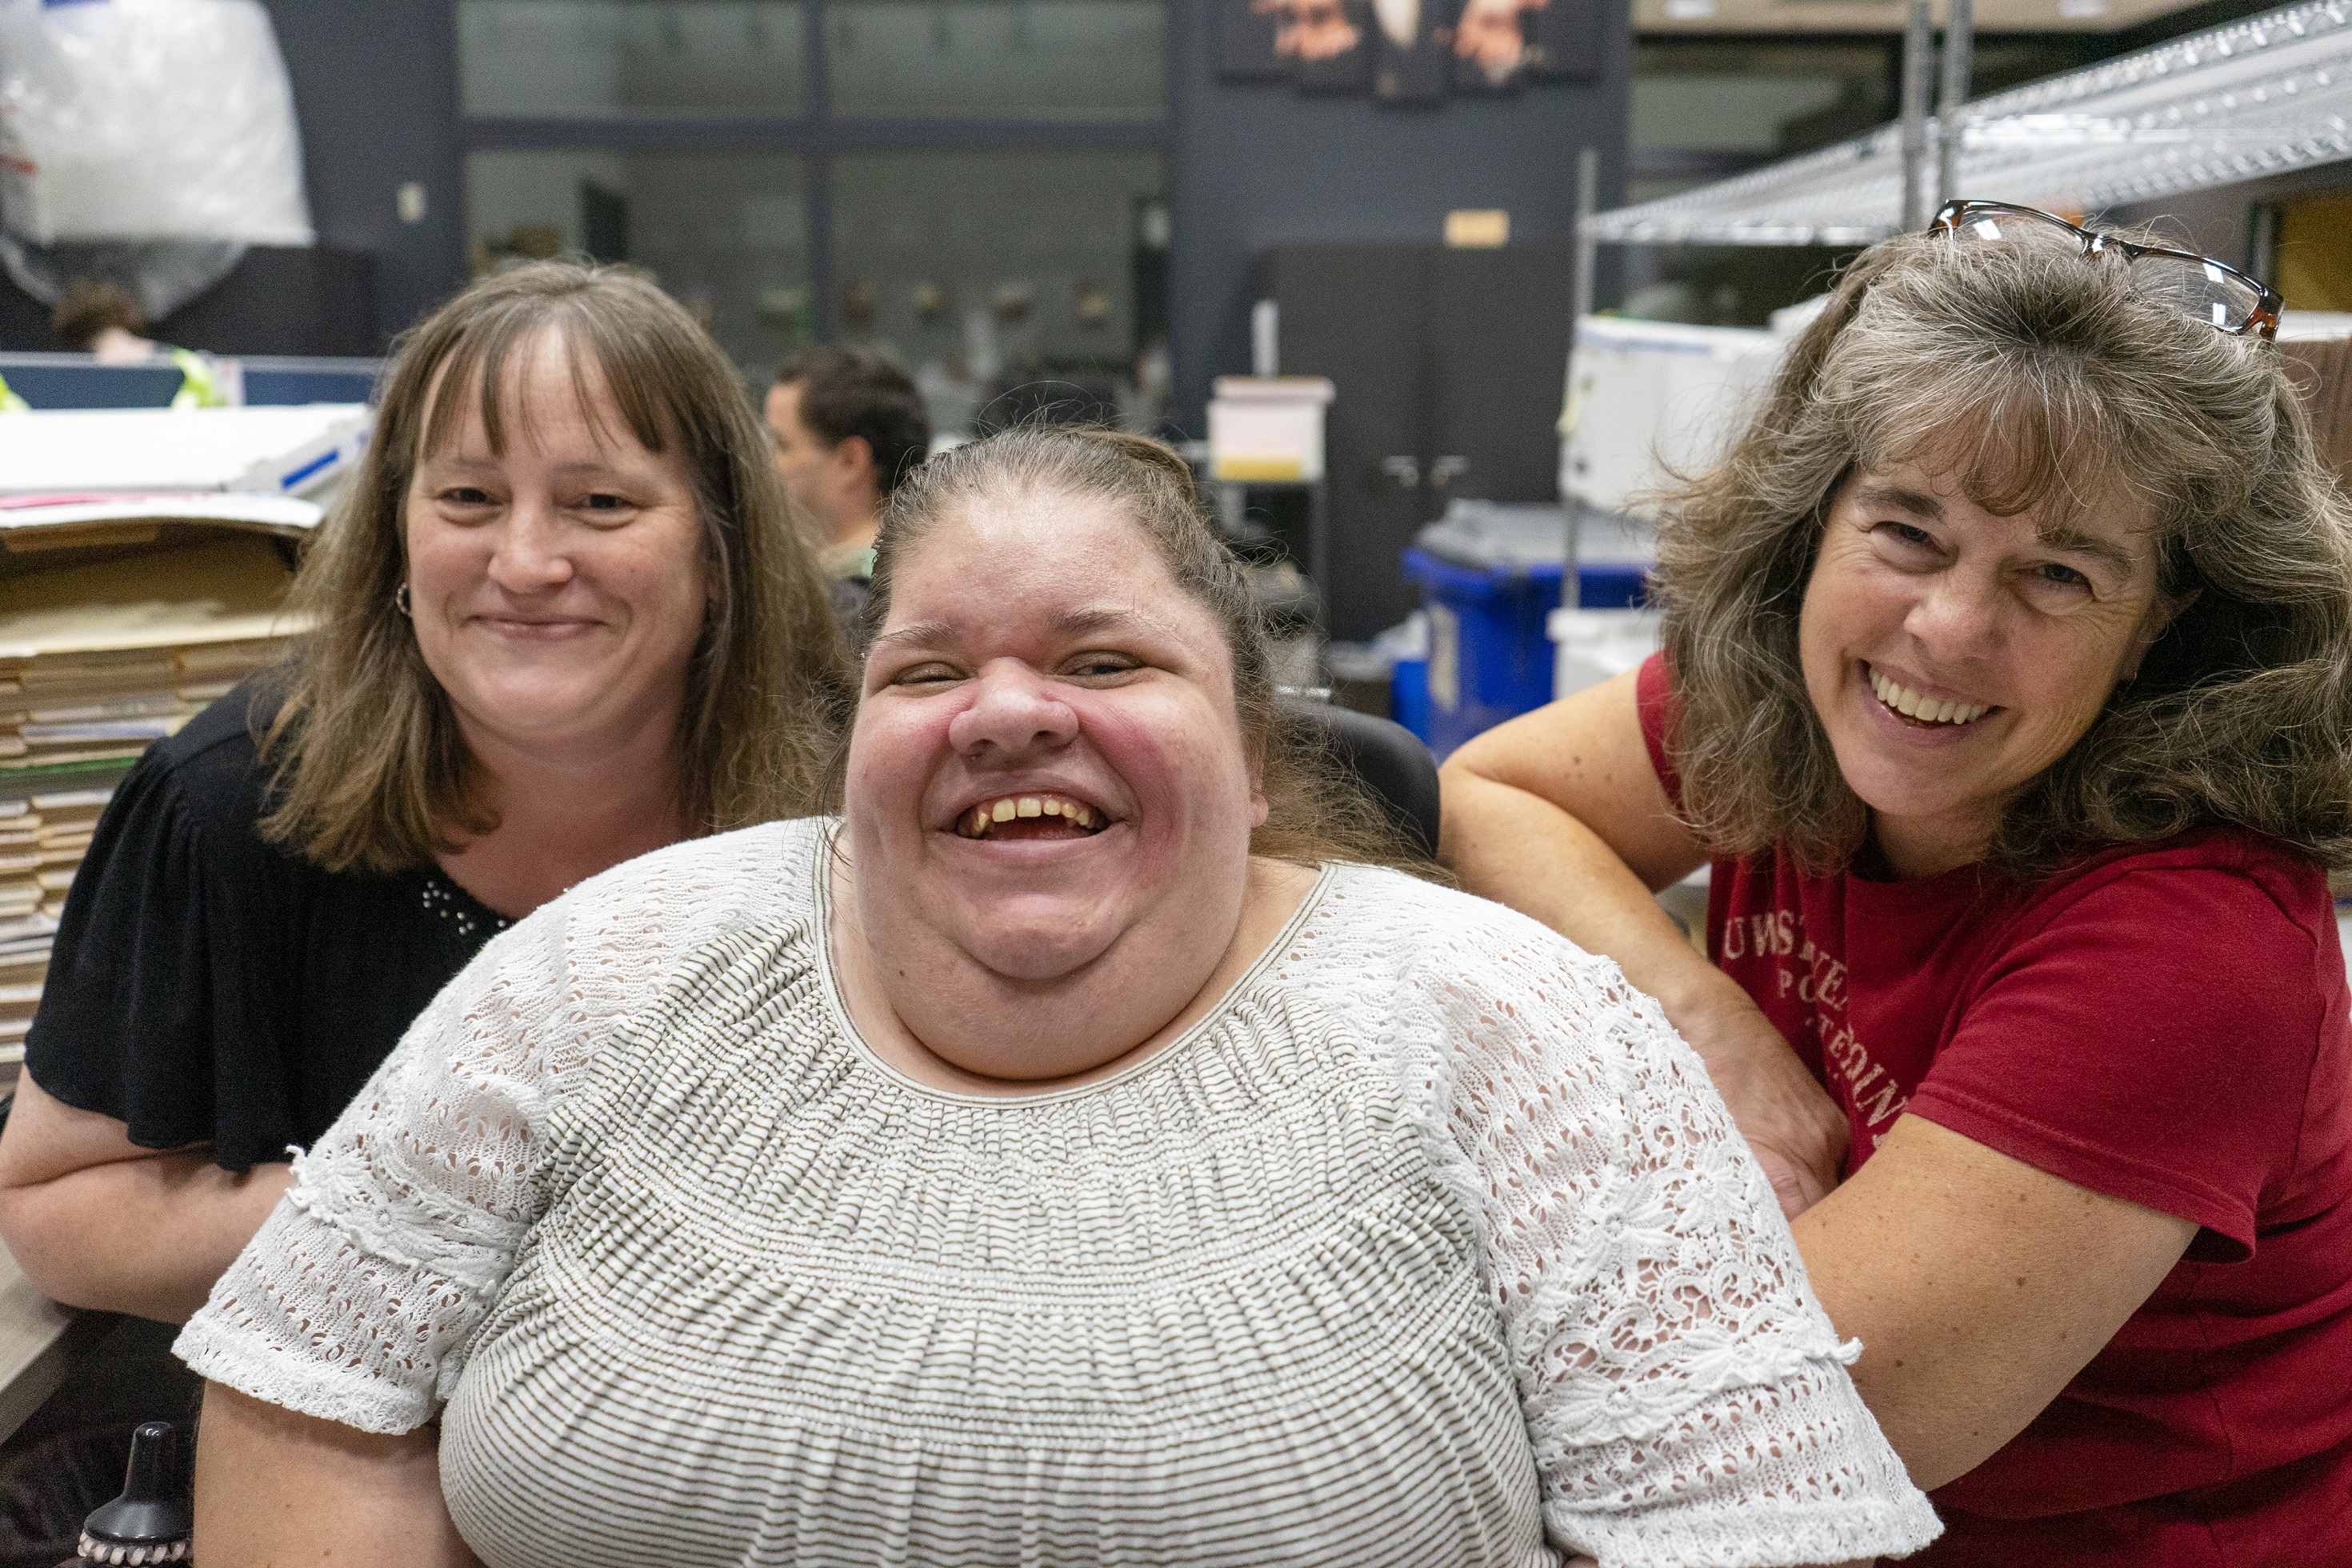 A Perspective on Hiring People with Disabilities